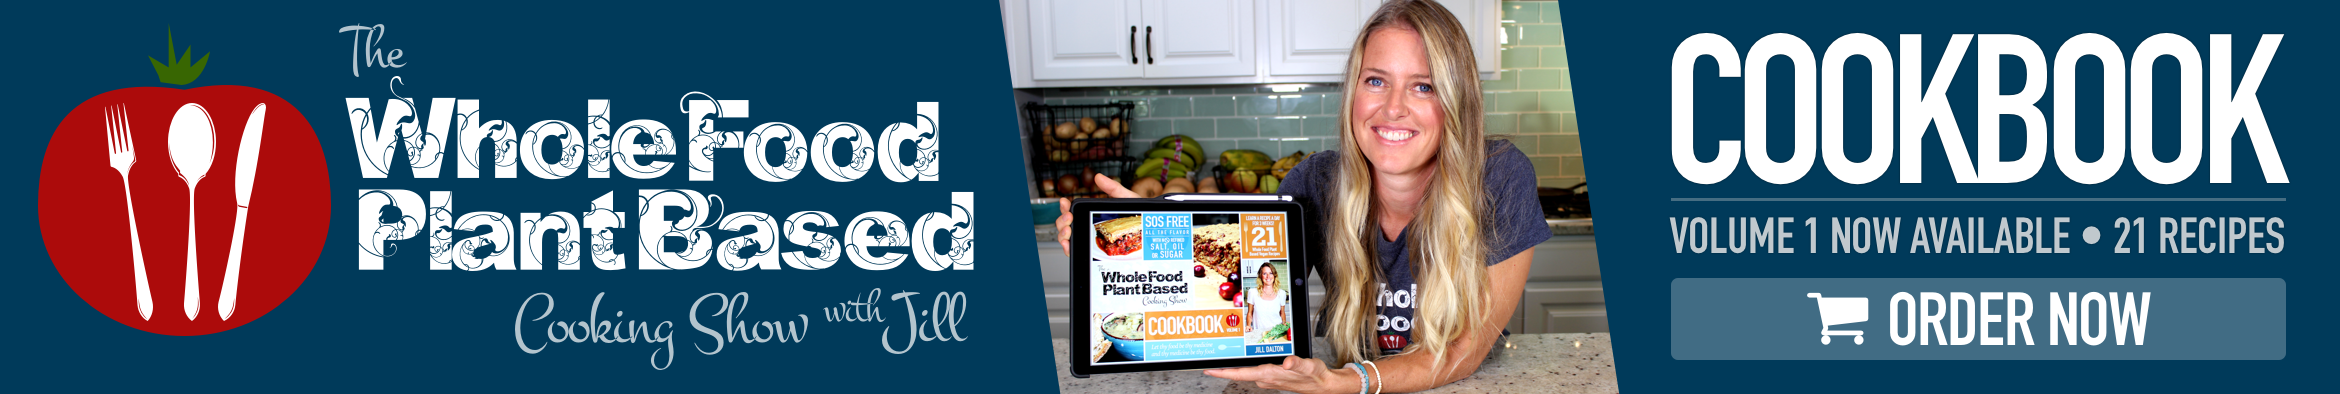 The Whole Food Plant Based Cooking Show